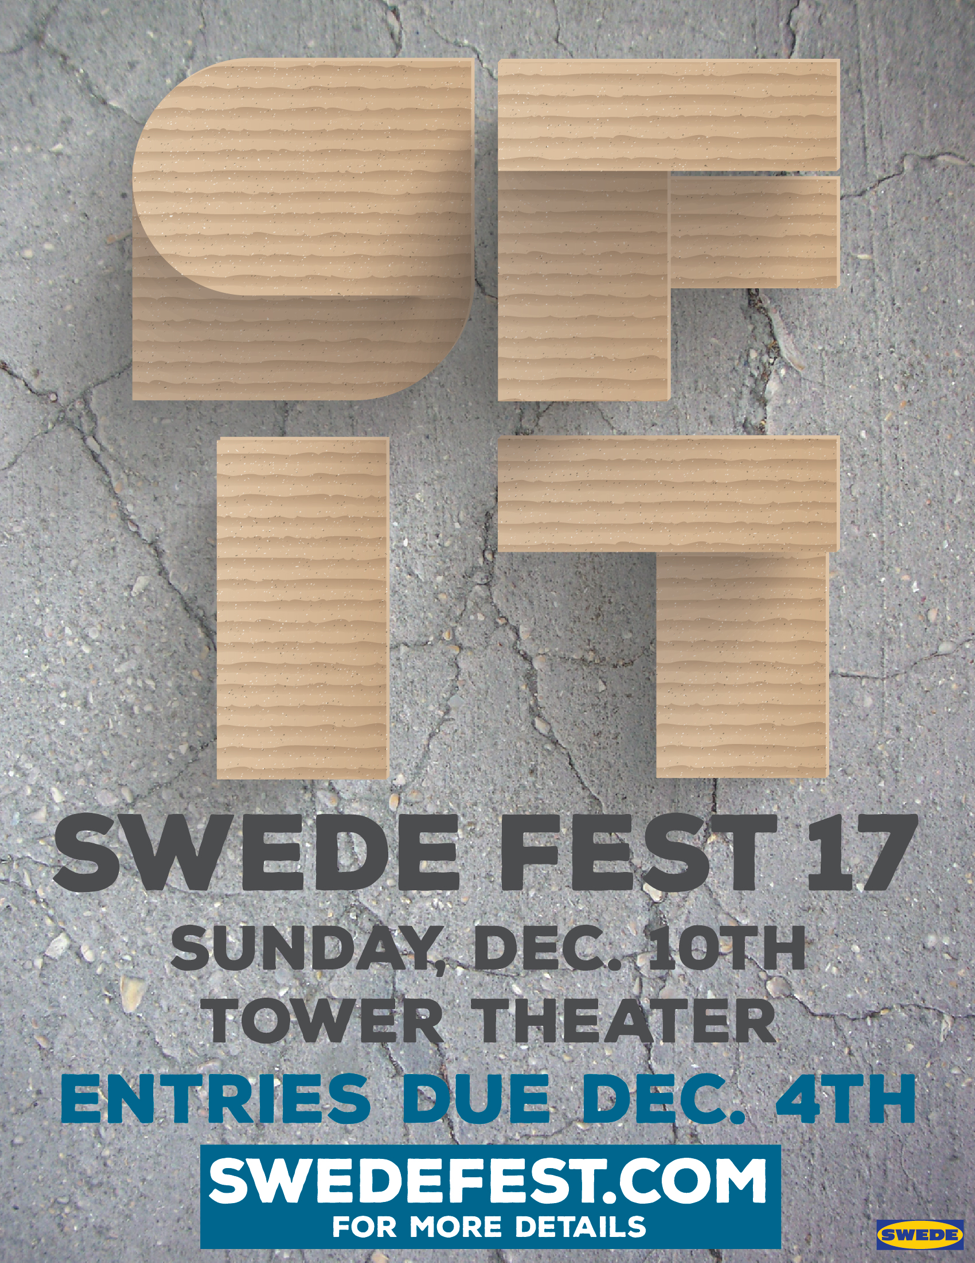 Call for entries for Swede Fest 17, festival set for December 10